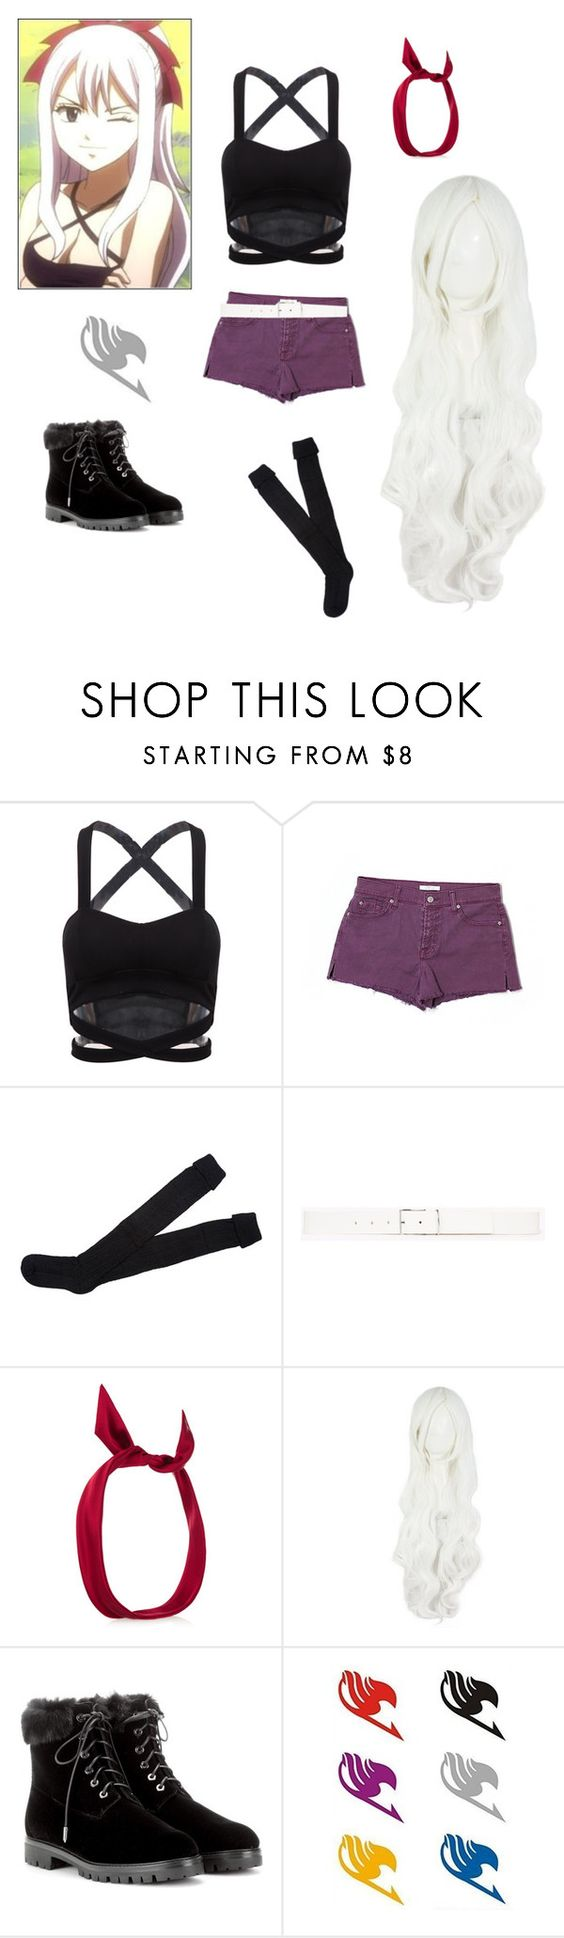 """""""Mirajane:Fairy Tail"""" by angle12345 ❤ liked on Polyvore featuring 7 For All Mankind, Theory, yunotme and Aquazzura"""